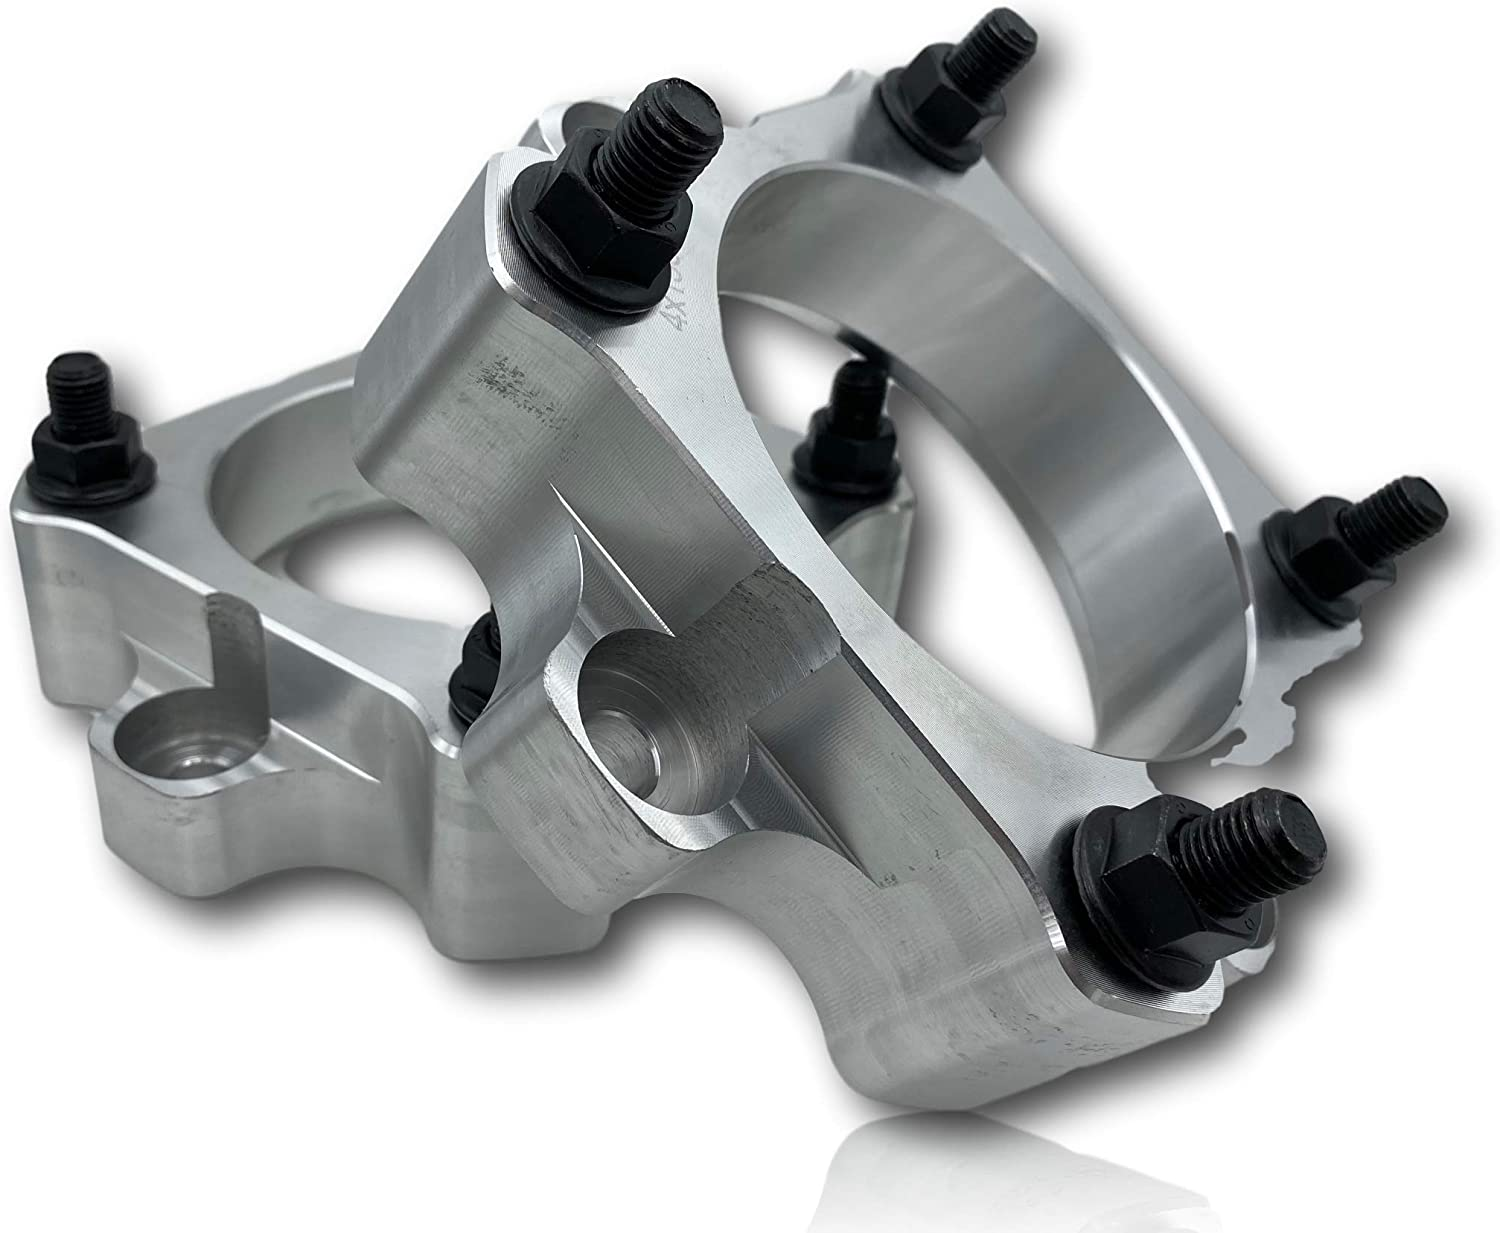 1.25 Powersport Wheel Spacers for Polaris RZR by RAD PARTS